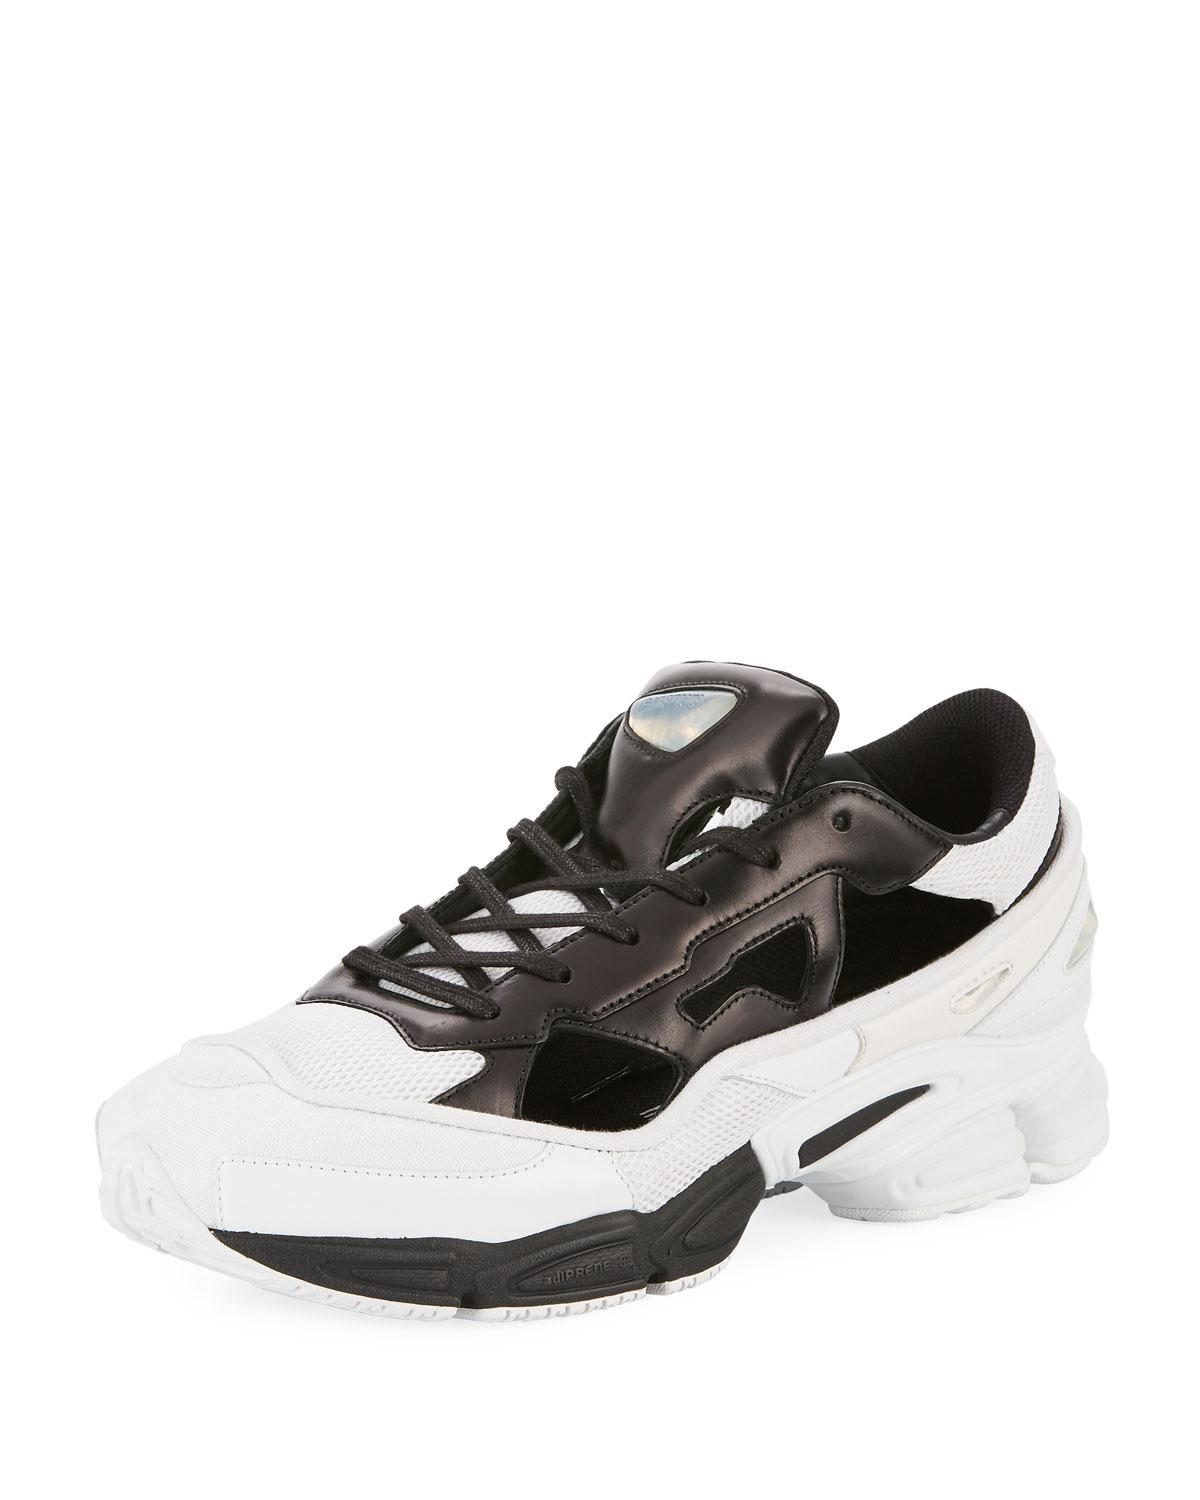 best service 41a4b 20a76 adidas By Raf Simons. Black Mens Replicant Ozweego Trainer Sneakers